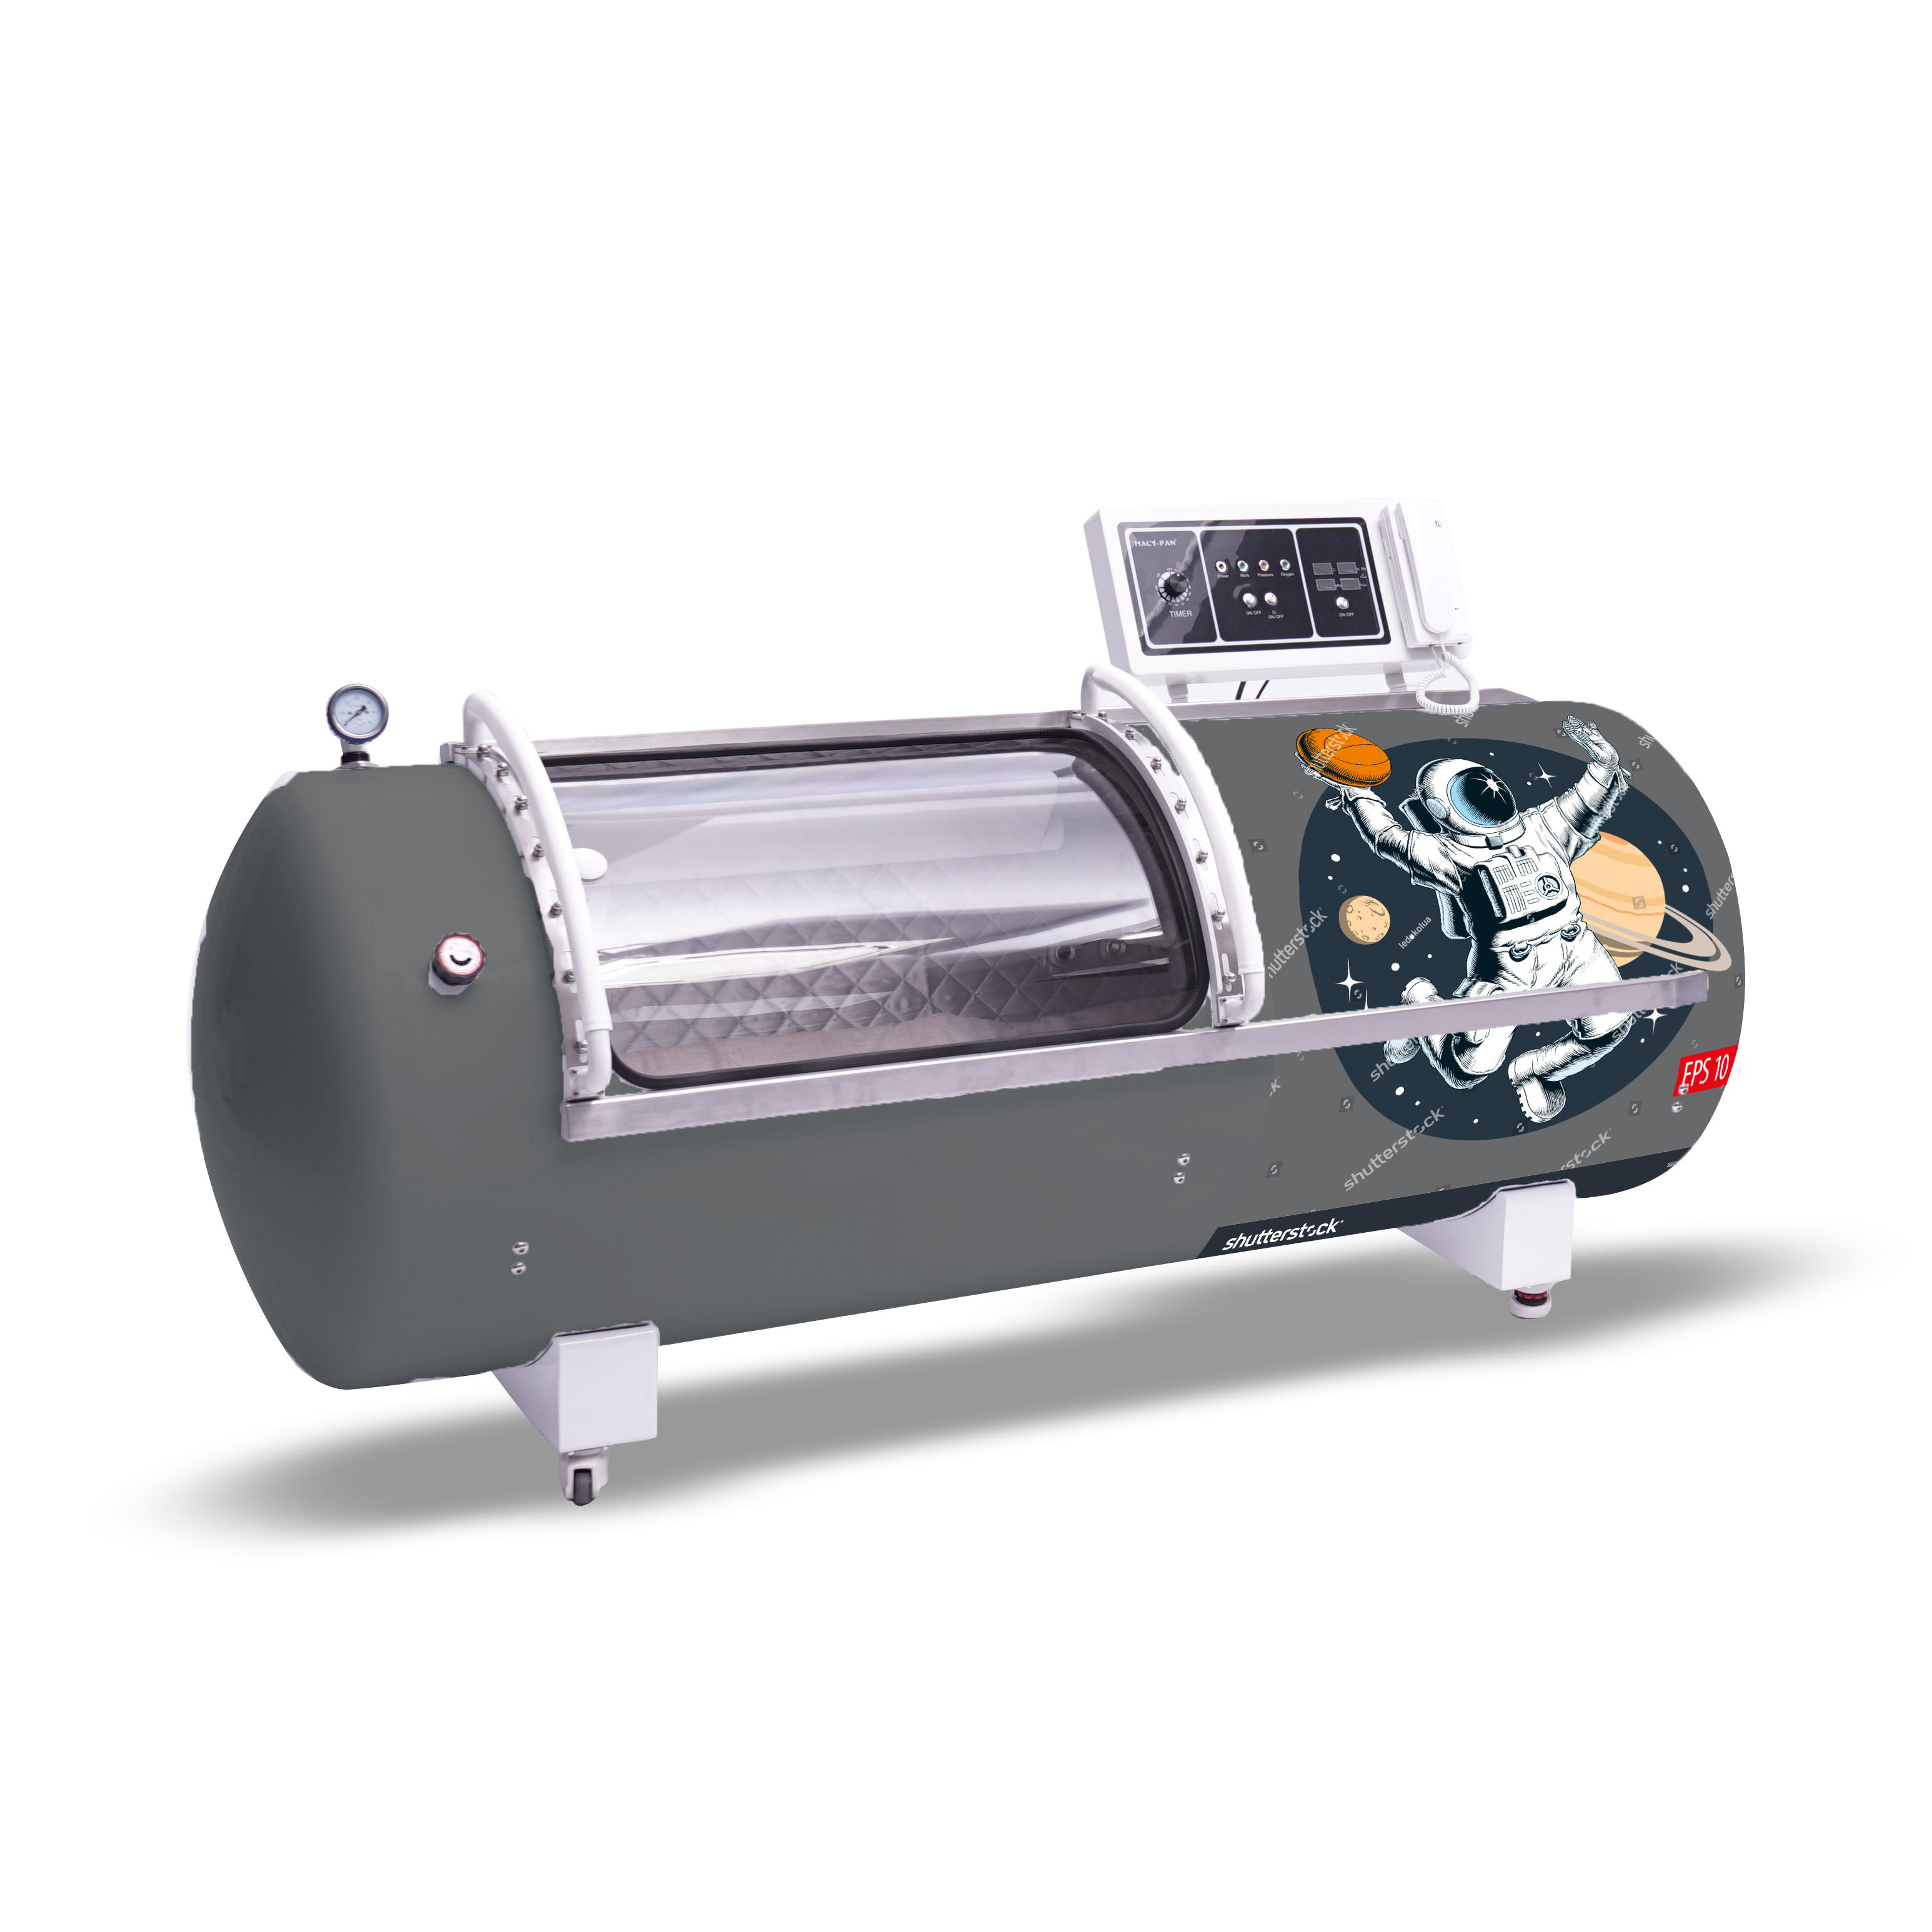 Rehabilitation Therapy Supplies Hyperbaric Oxygen Chamber 1.5ATA